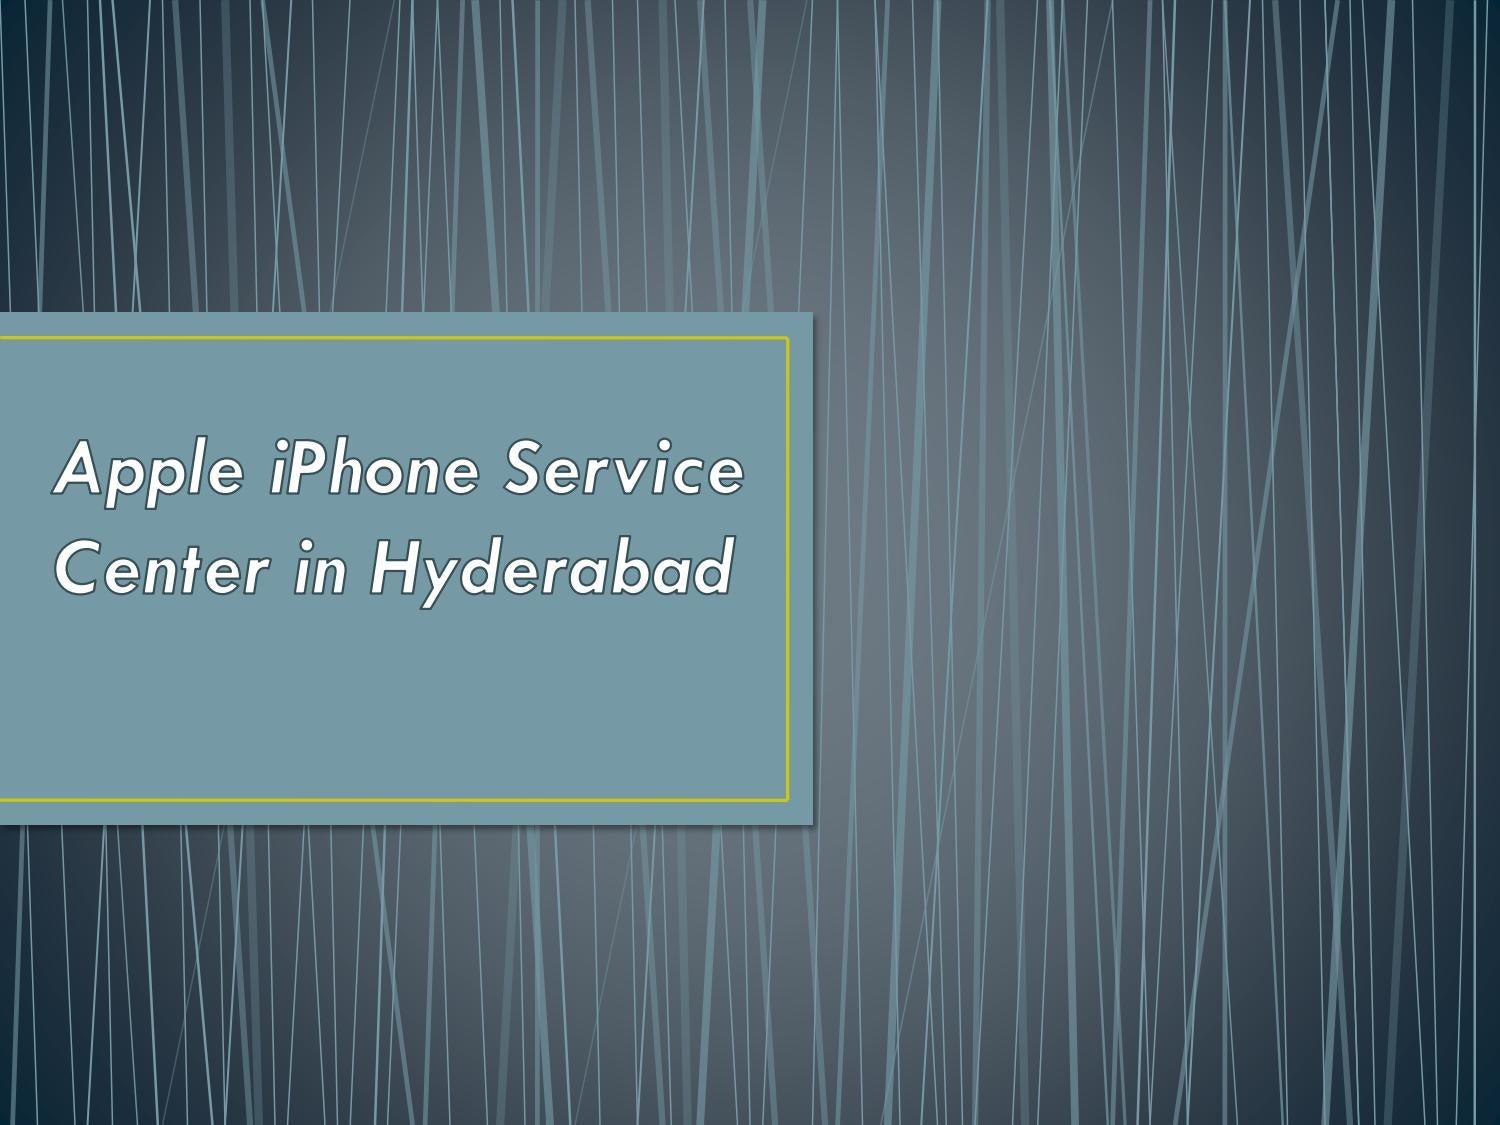 Apple Iphone Service Center In Hyderabad By Grotal Issuu